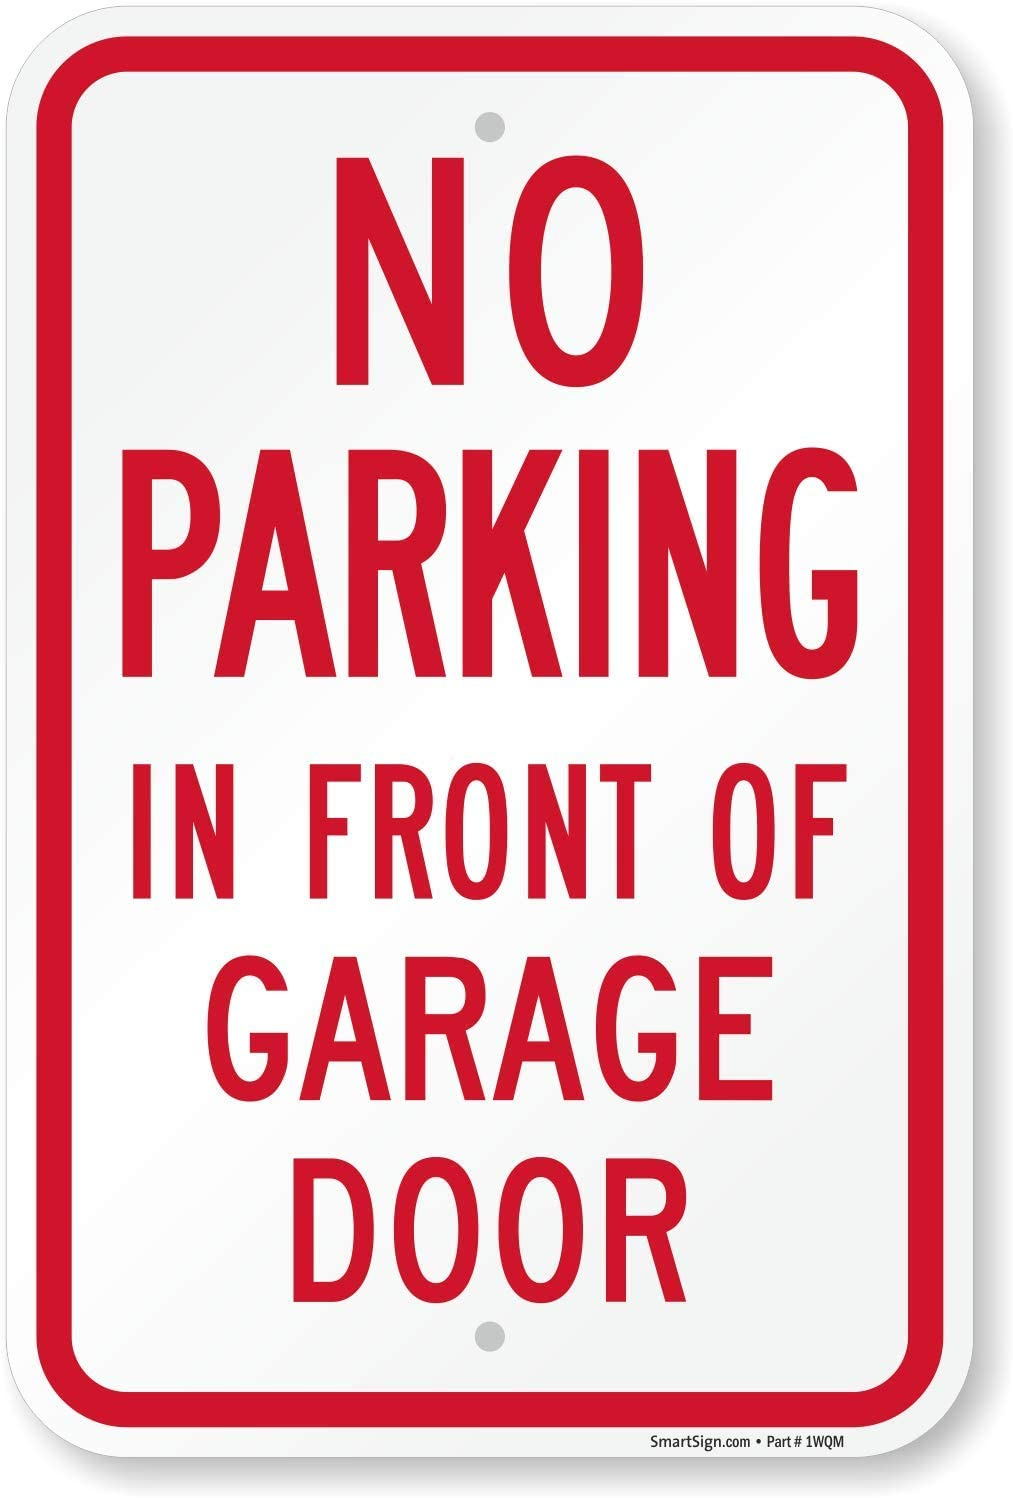 NO PARKING ACCESS SIGN Metal Simple White Driveway Reserved Garage Property